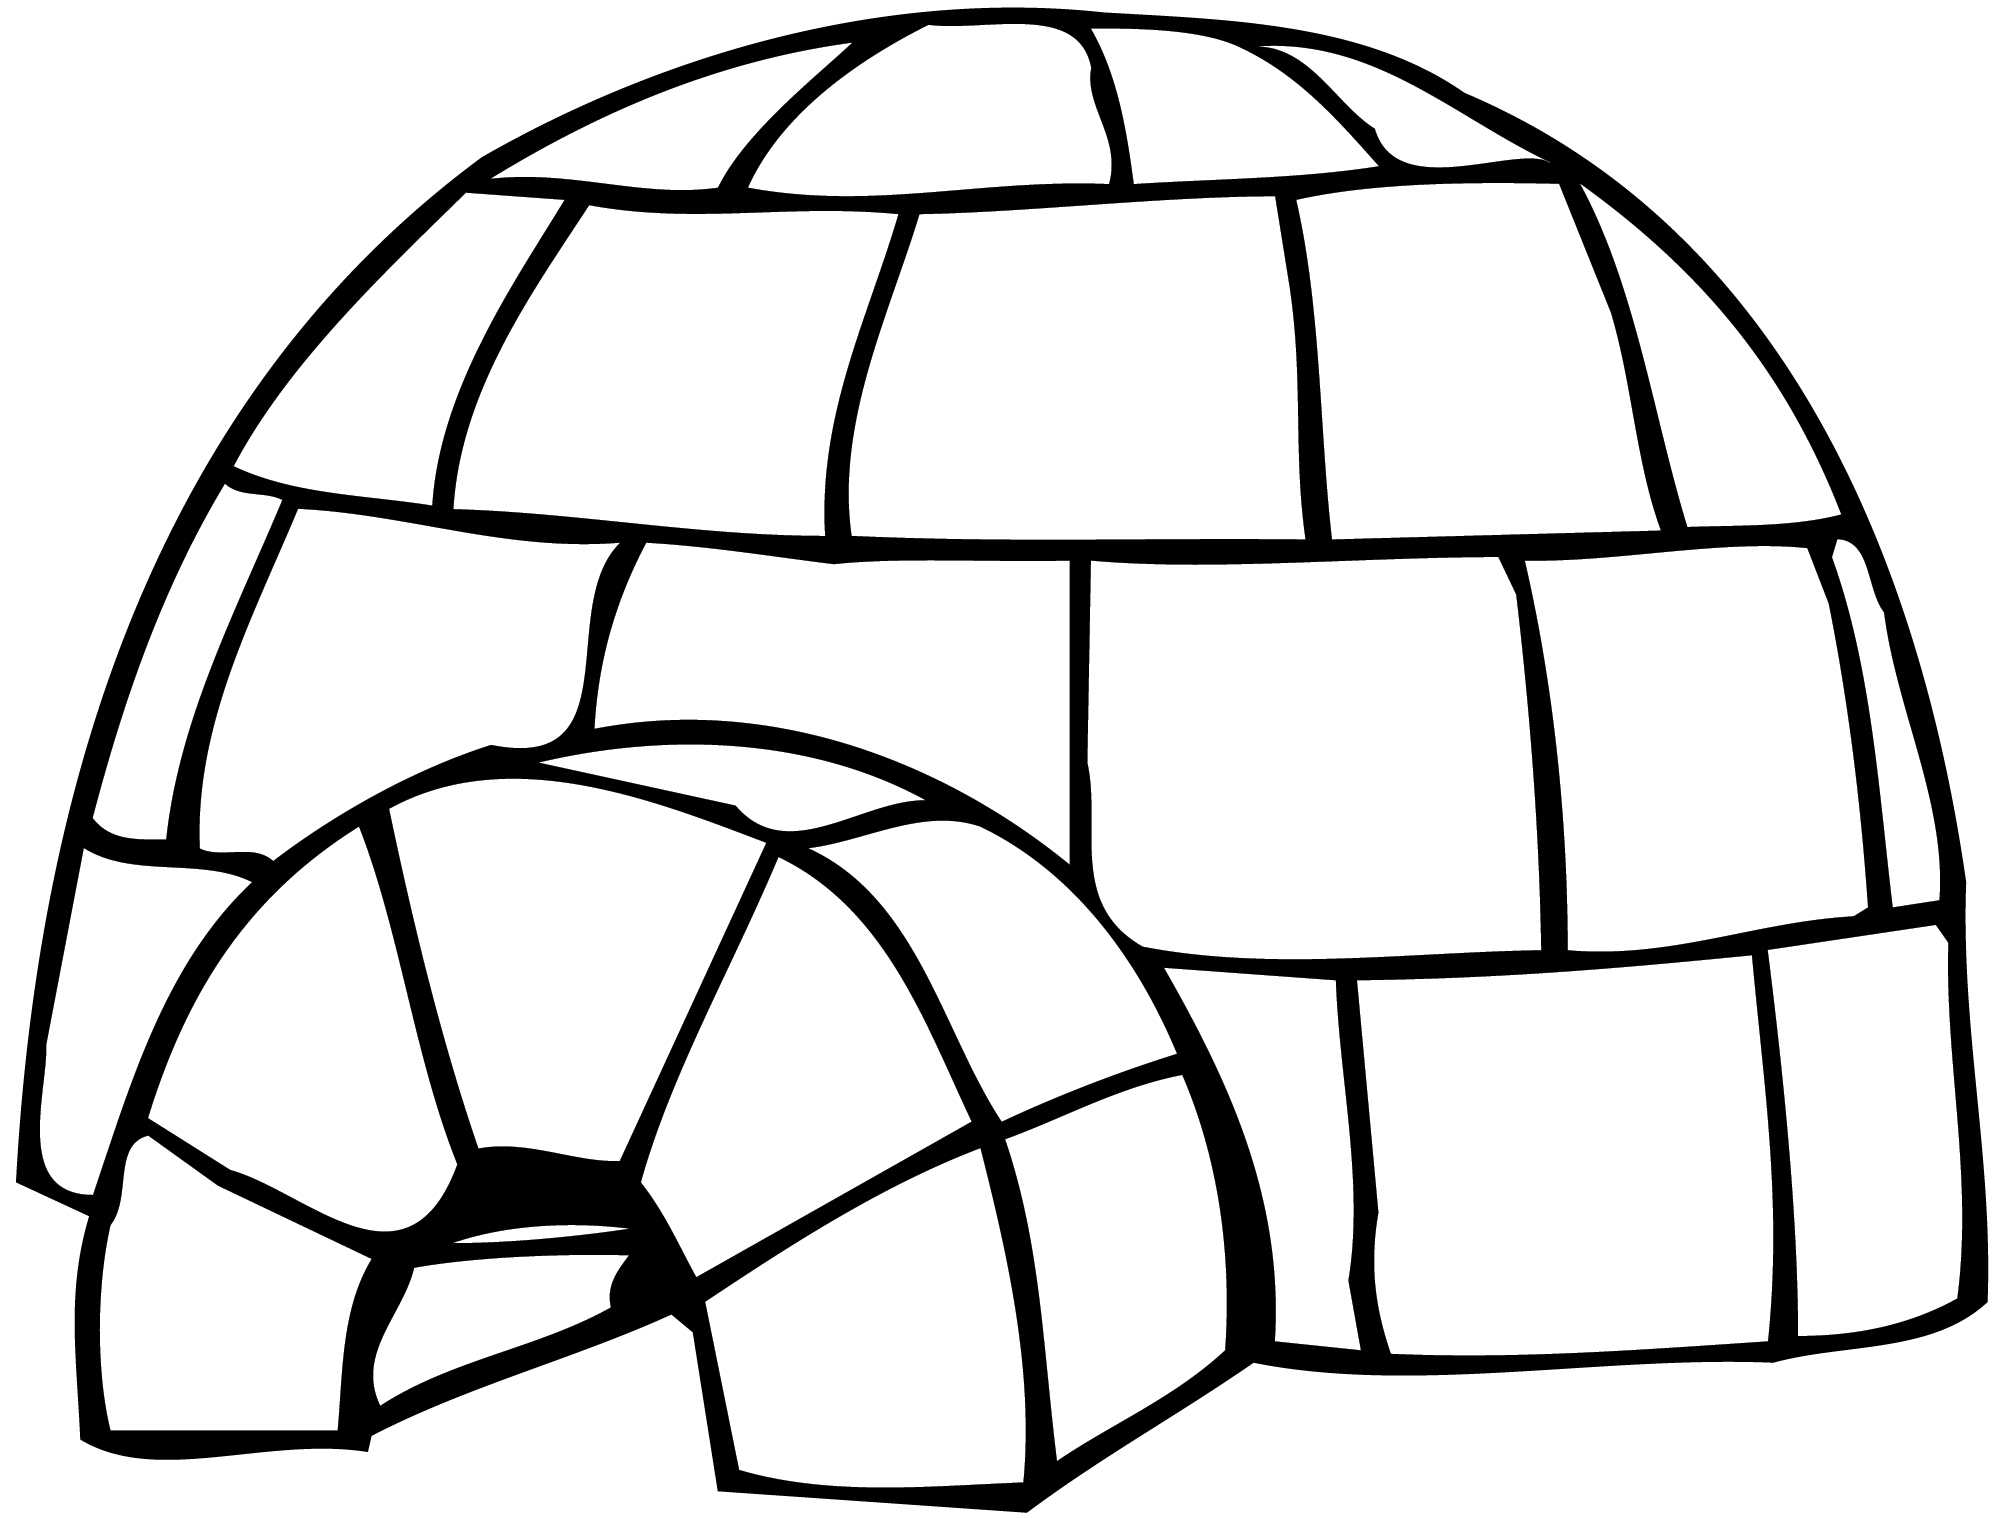 Igloo clipart. Free cliparts download clip